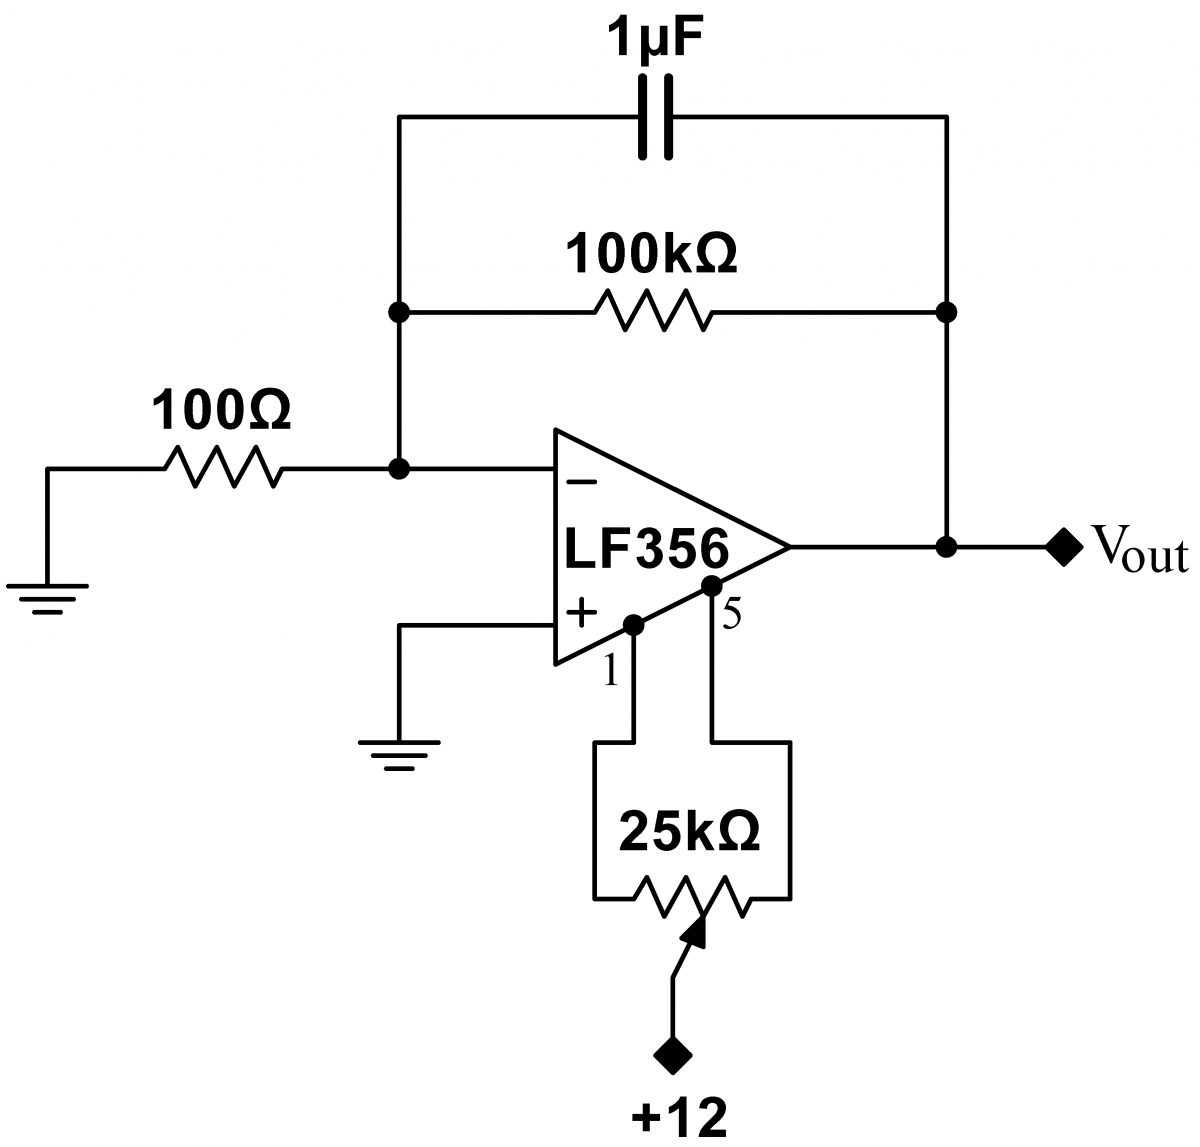 dc offset adjustment electronics forum circuits projects and